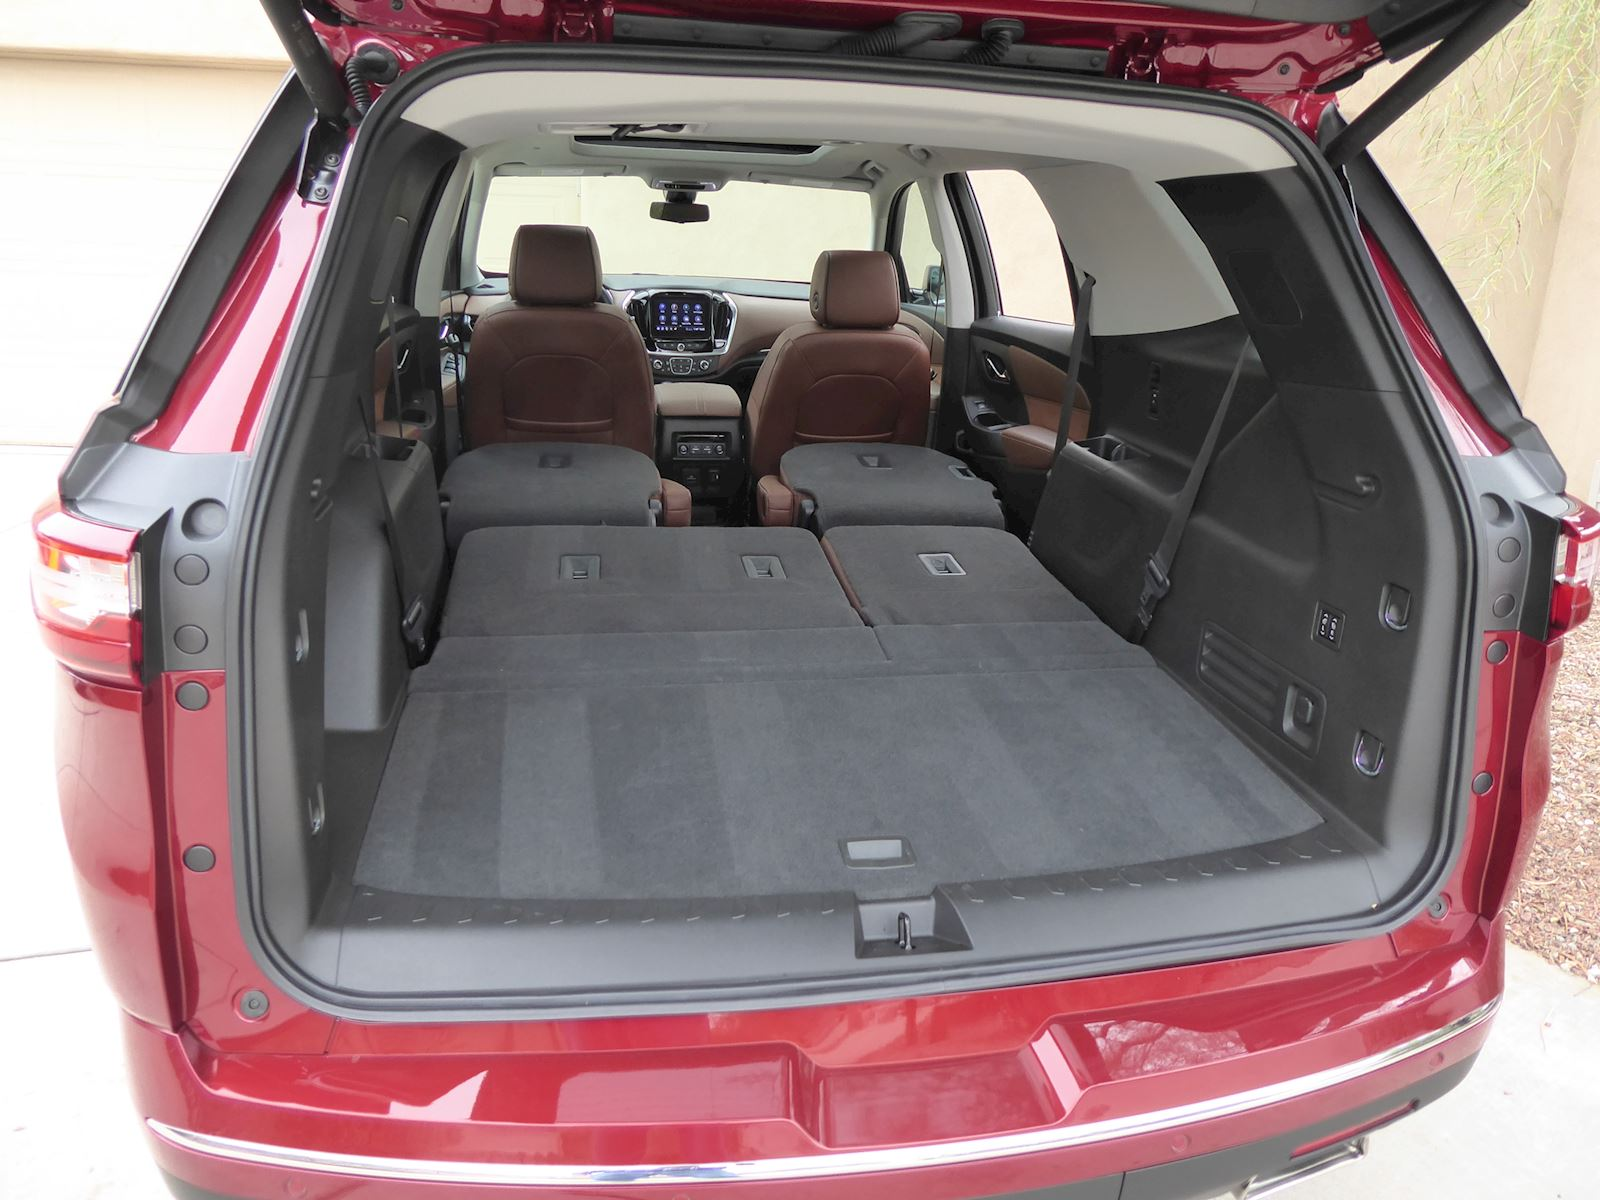 2020 Chevrolet Traverse cargo space